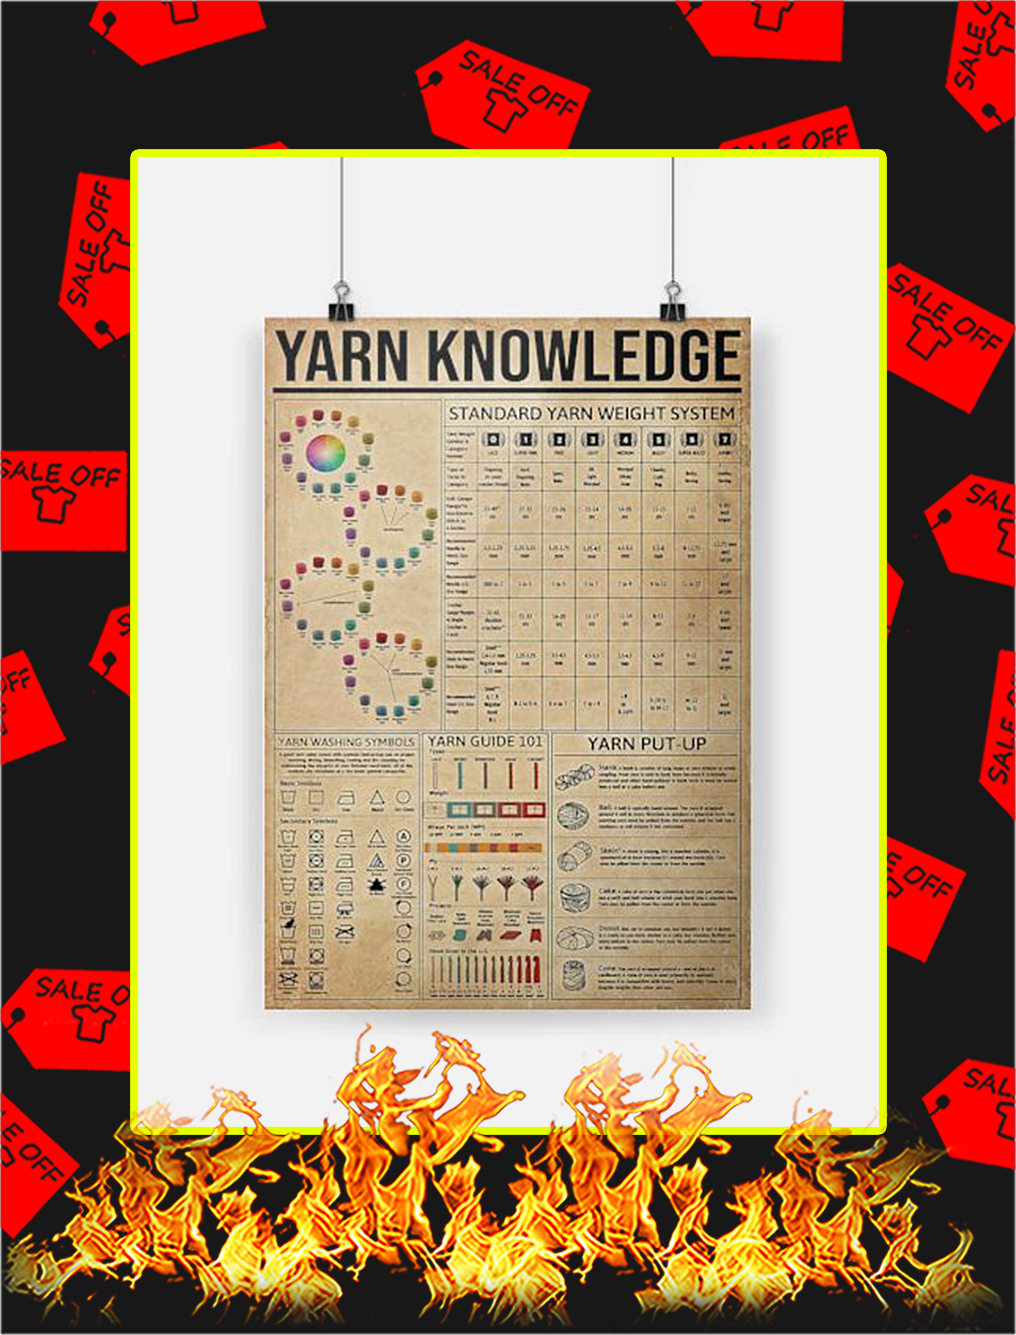 Yarn Knowledge Poster - A4